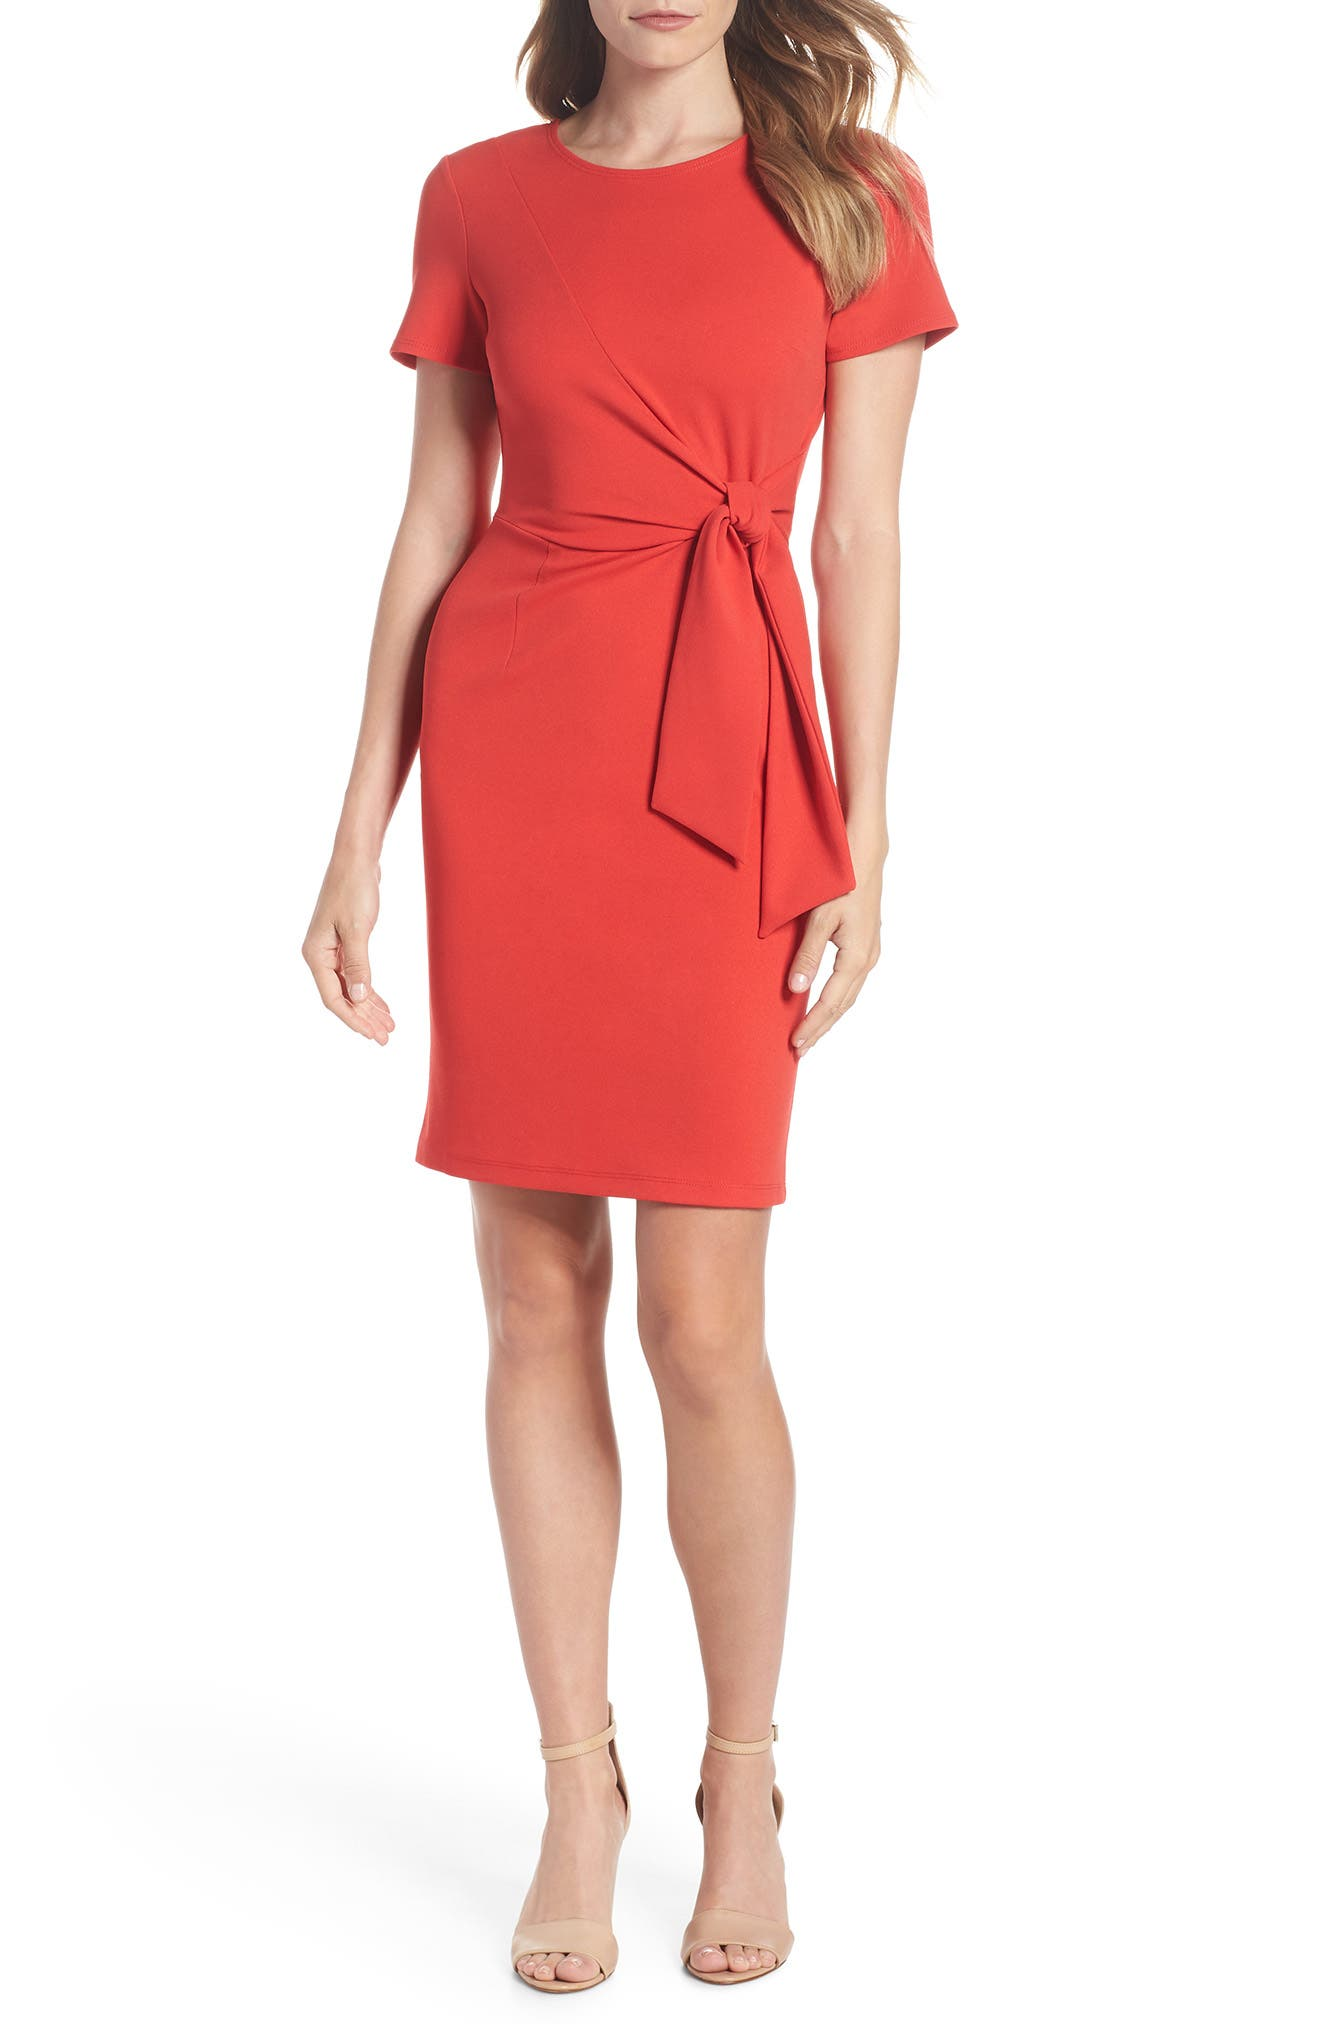 DOROTHY PERKINS,                             Tie Front Sheath Dress,                             Main thumbnail 1, color,                             650